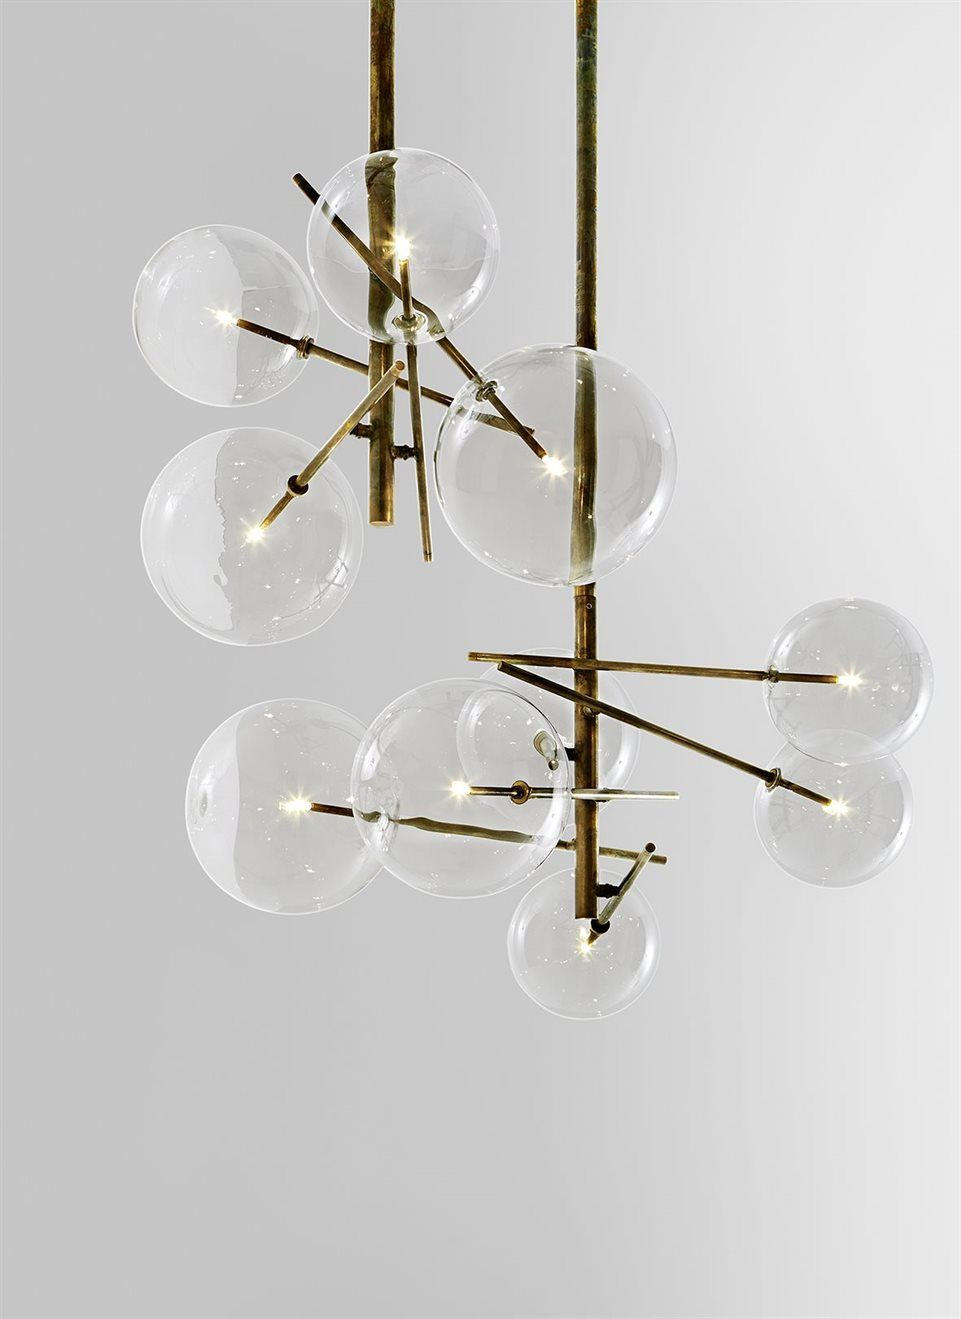 Bolle hanging lamp metal parts in hand burnished brass designed bolle hanging lamp metal parts in hand burnished brass designed by massimo castagna mozeypictures Choice Image